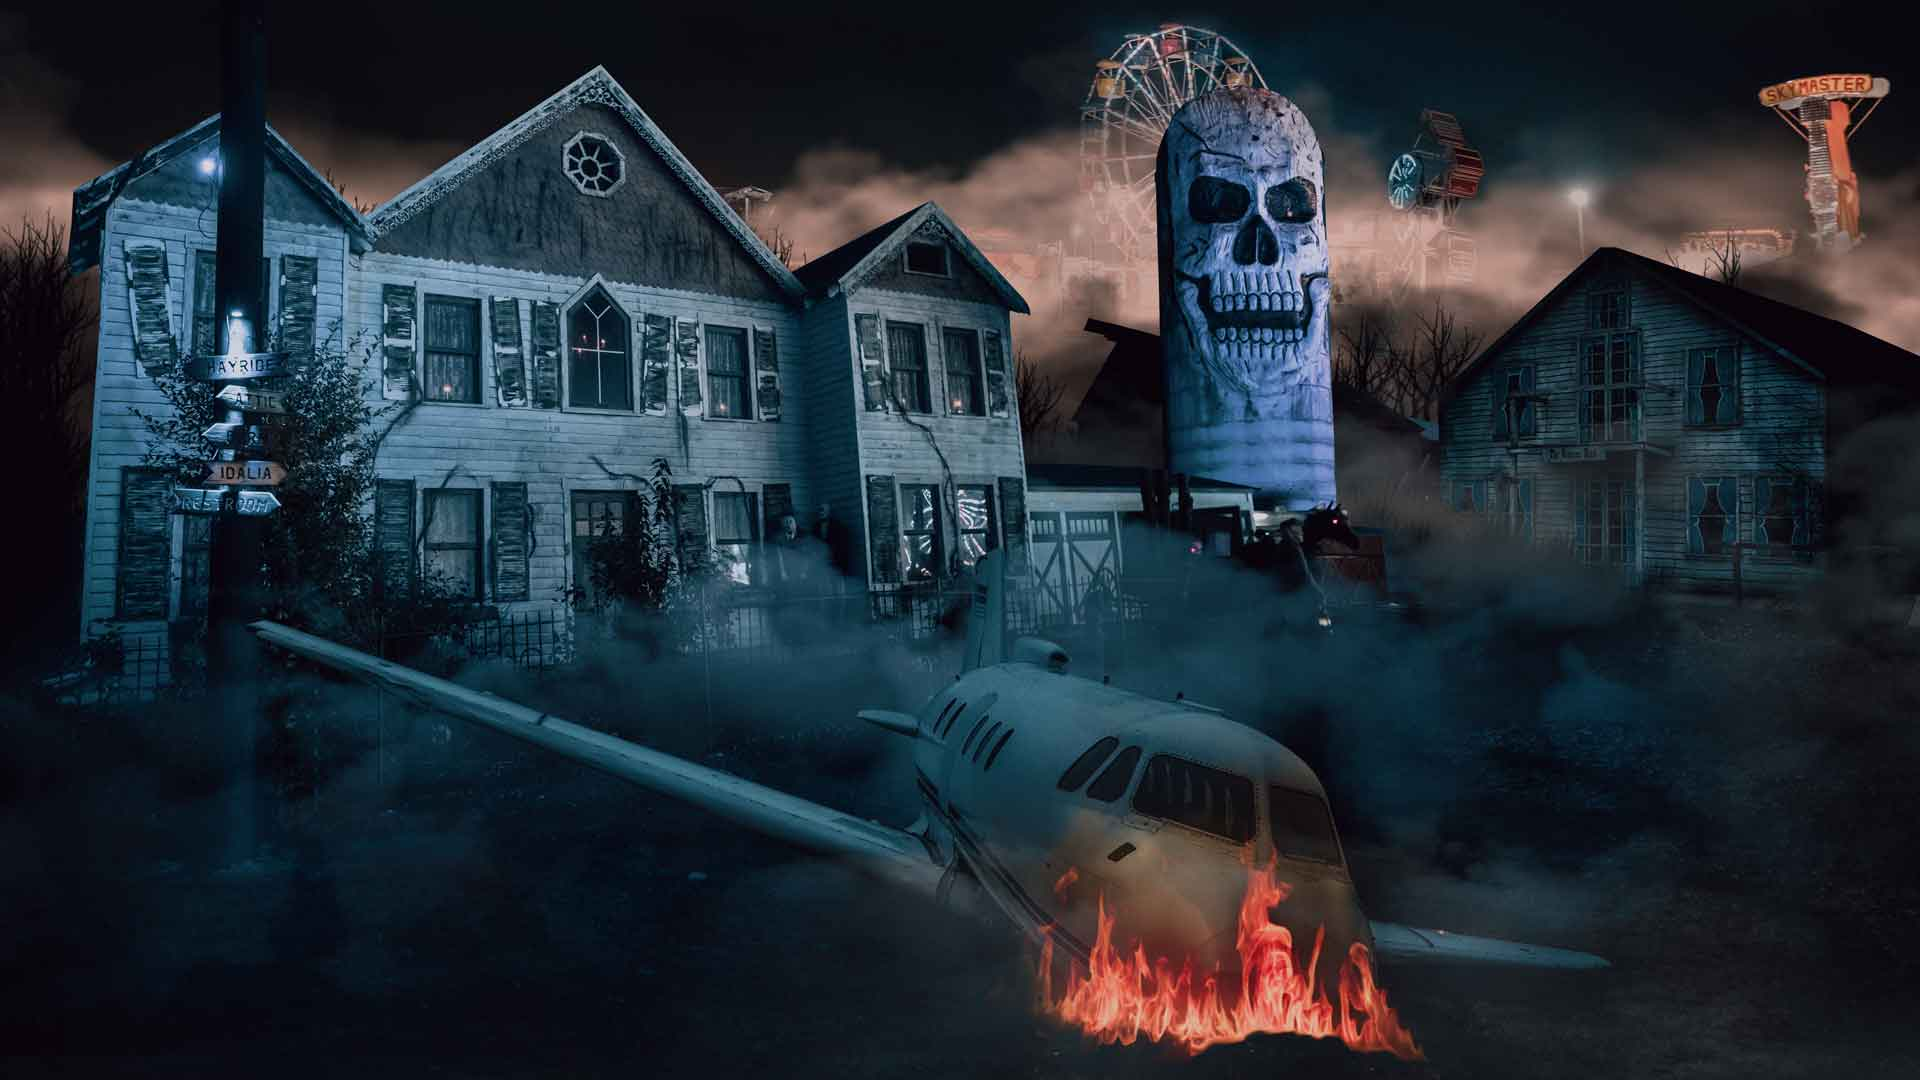 Frightland Haunted Attractions Named one of the top 10 scariest haunts in the country.